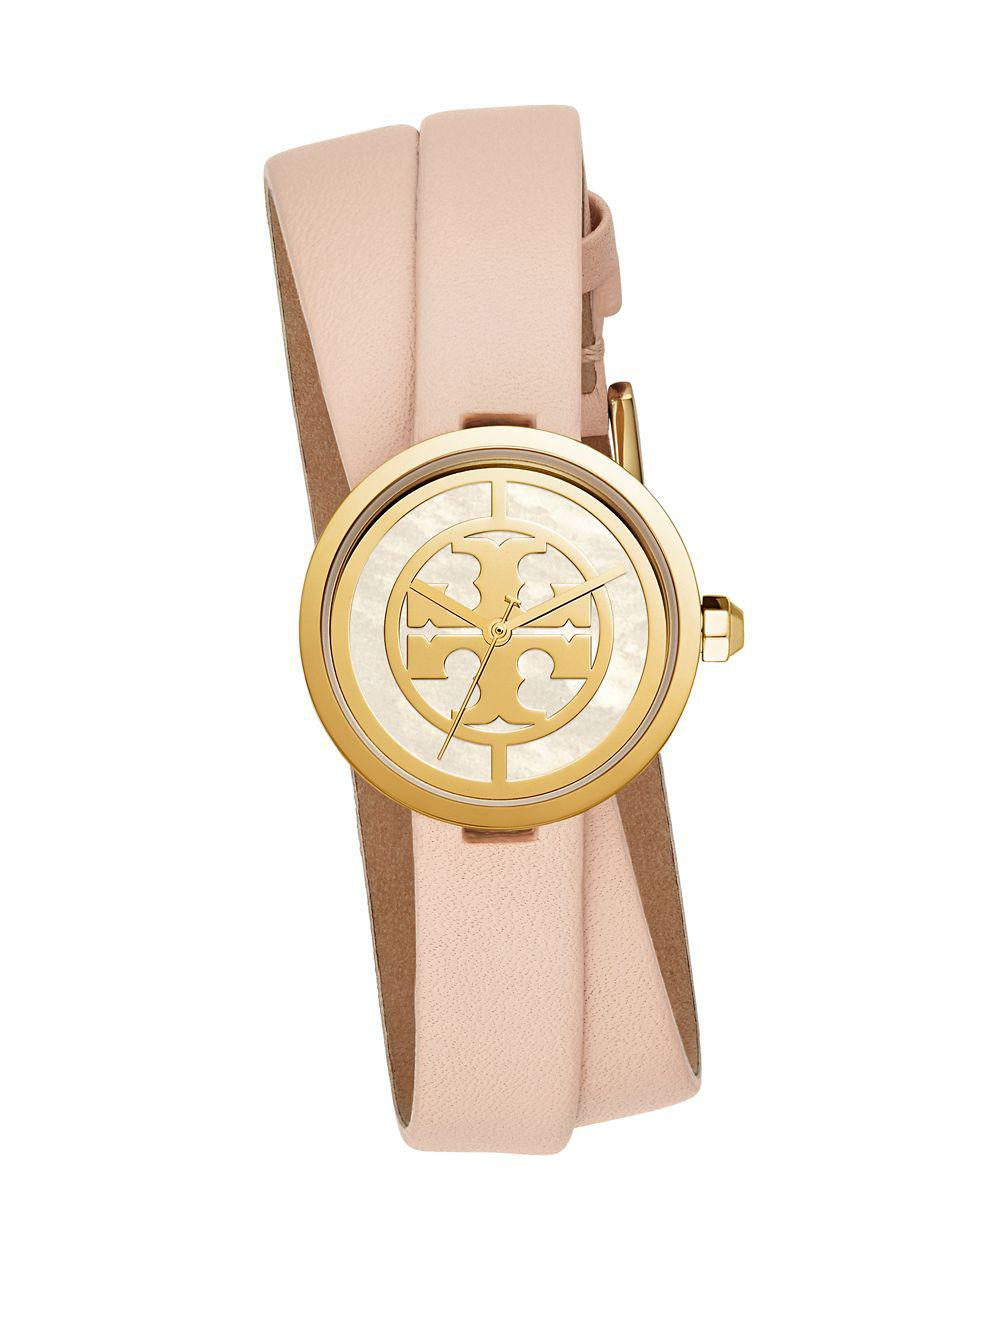 51f1dc6260f Tory Burch Reva Double Wrap Leather Strap Watch in Metallic - Lyst